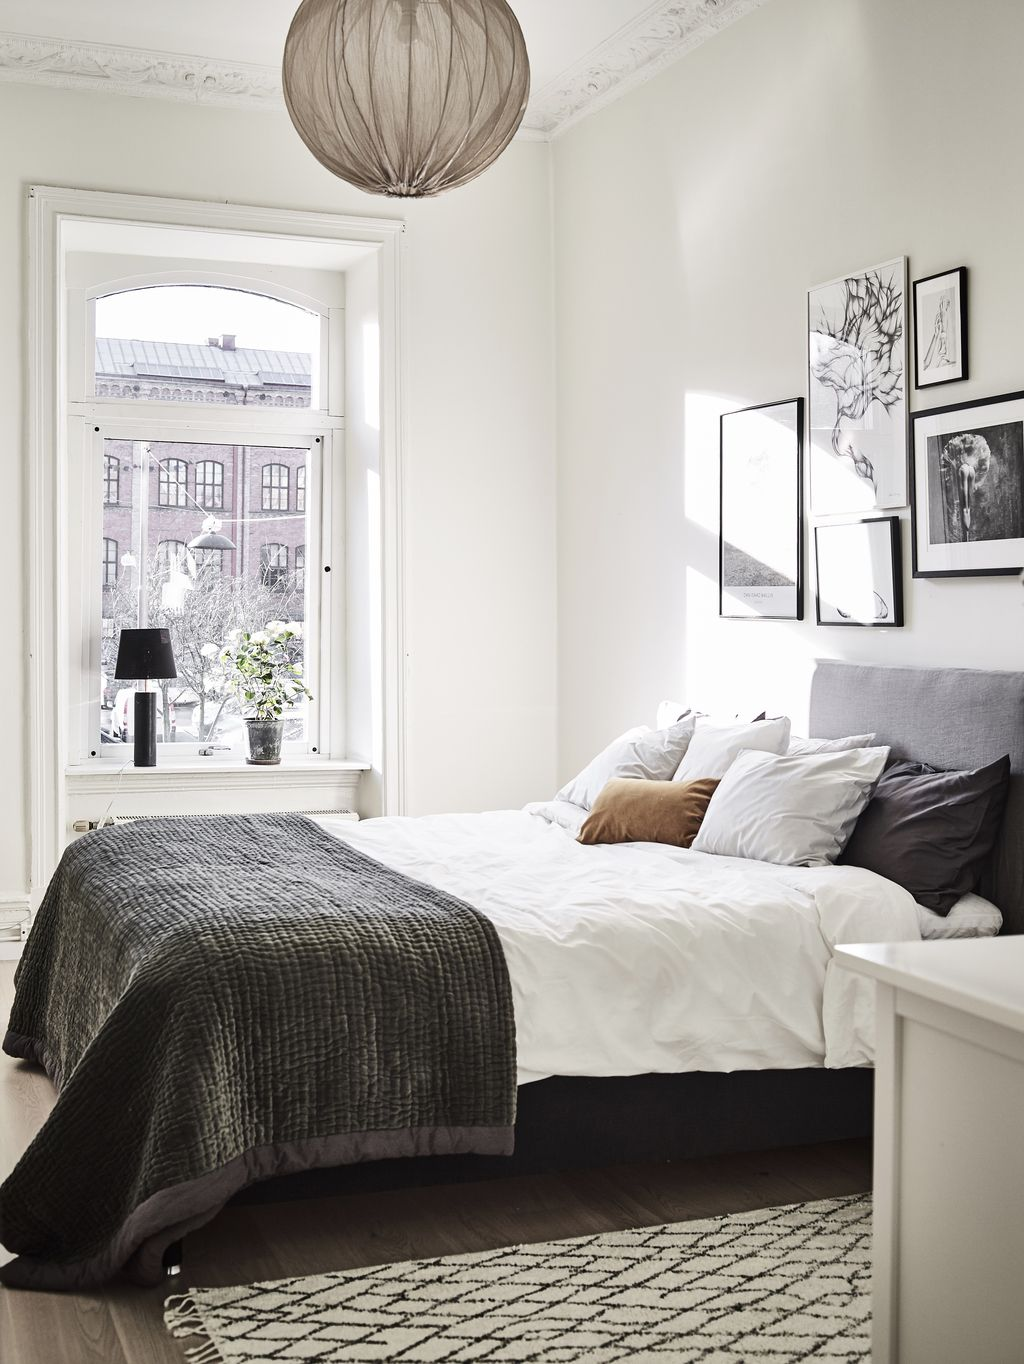 One Of The Most Popular Styles Out There We Ve Collected A Selection Of Stunning Scandin Scandinavian Design Bedroom Scandinavian Bedroom Decor Bedroom Design